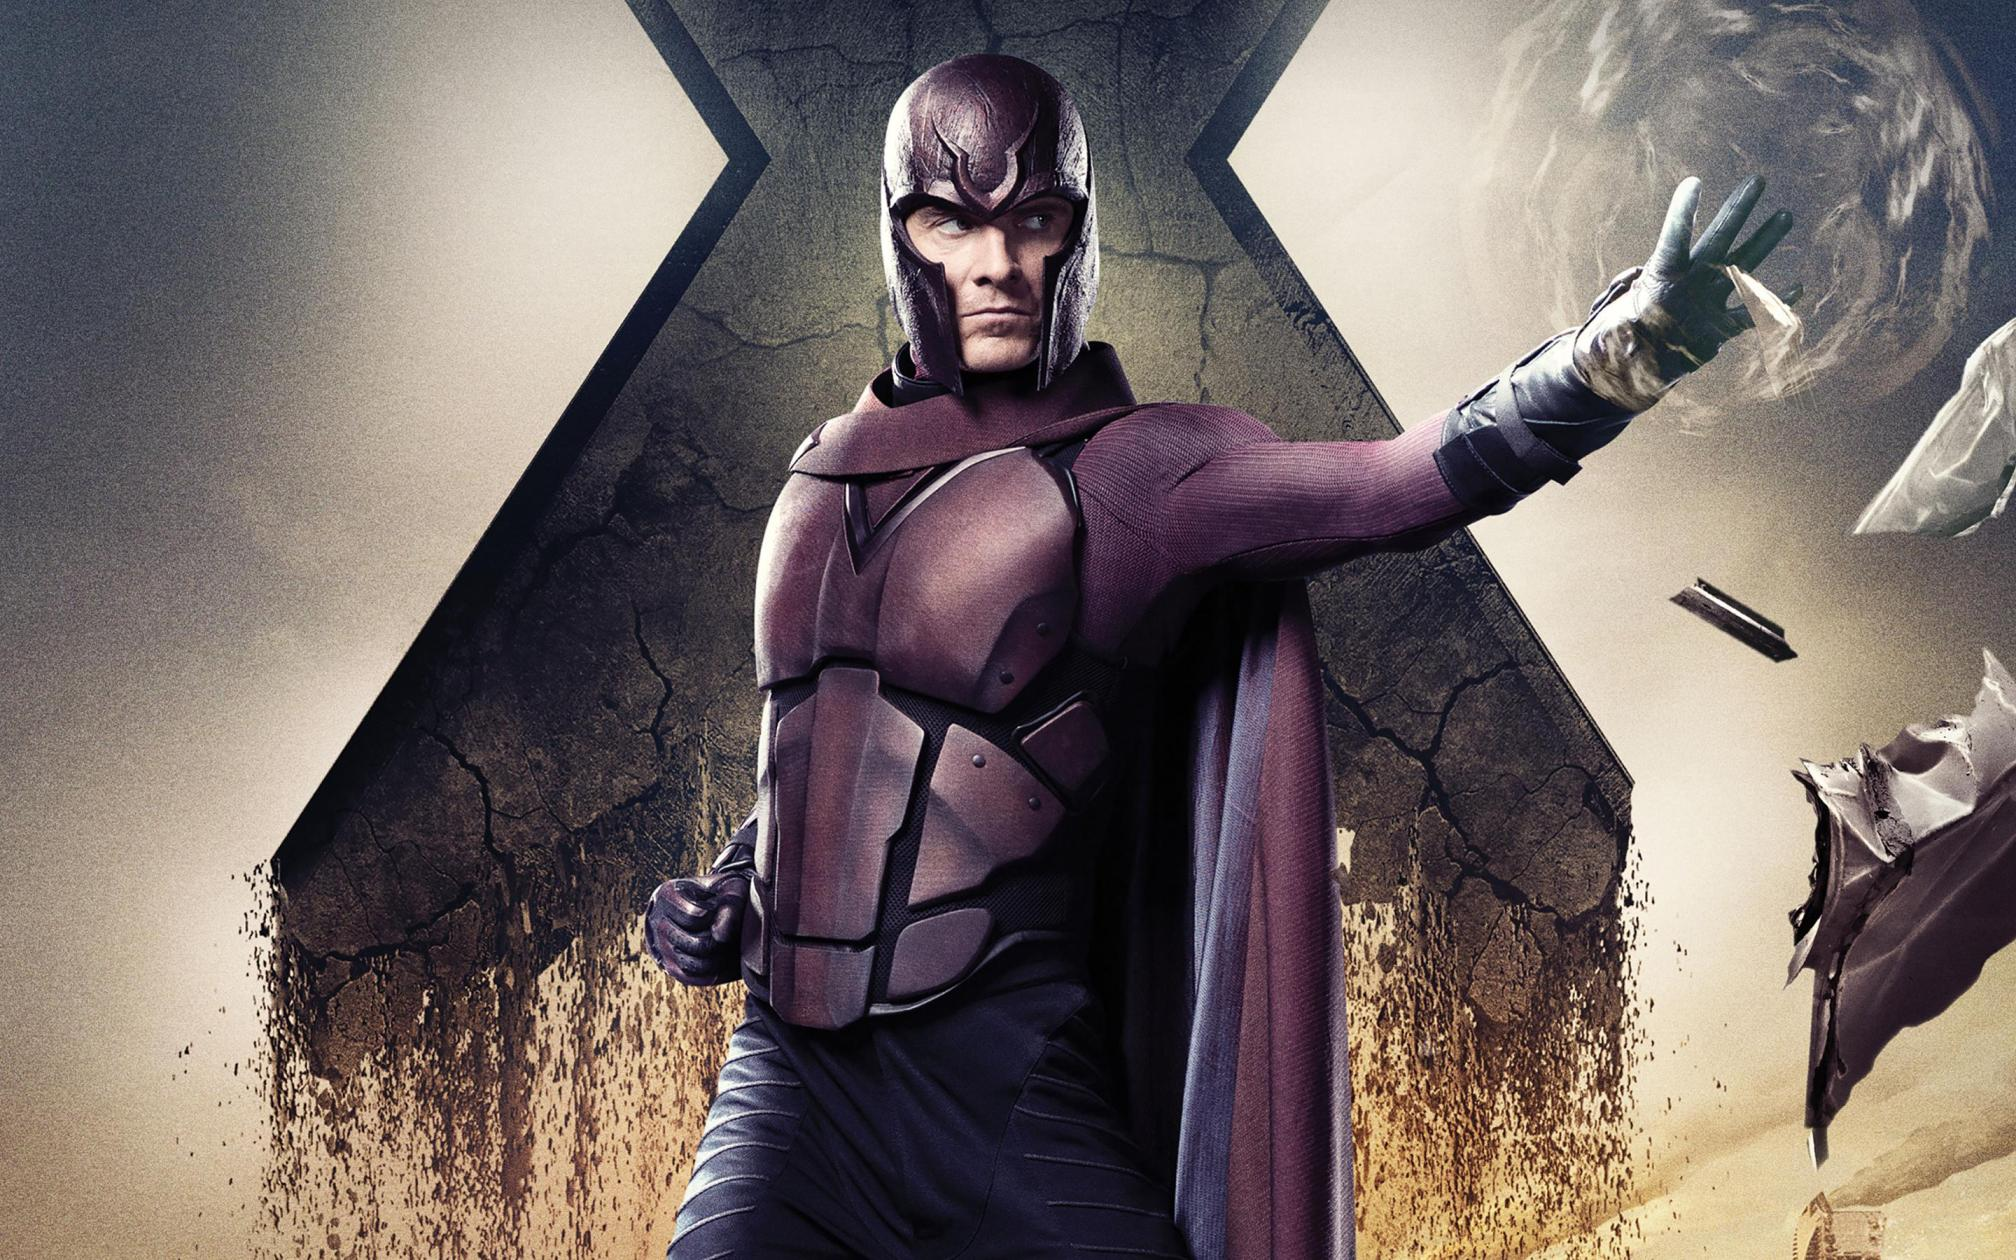 X men days of future past - Giorni di un Futuro Passato - Michael Fassbender - Magneto